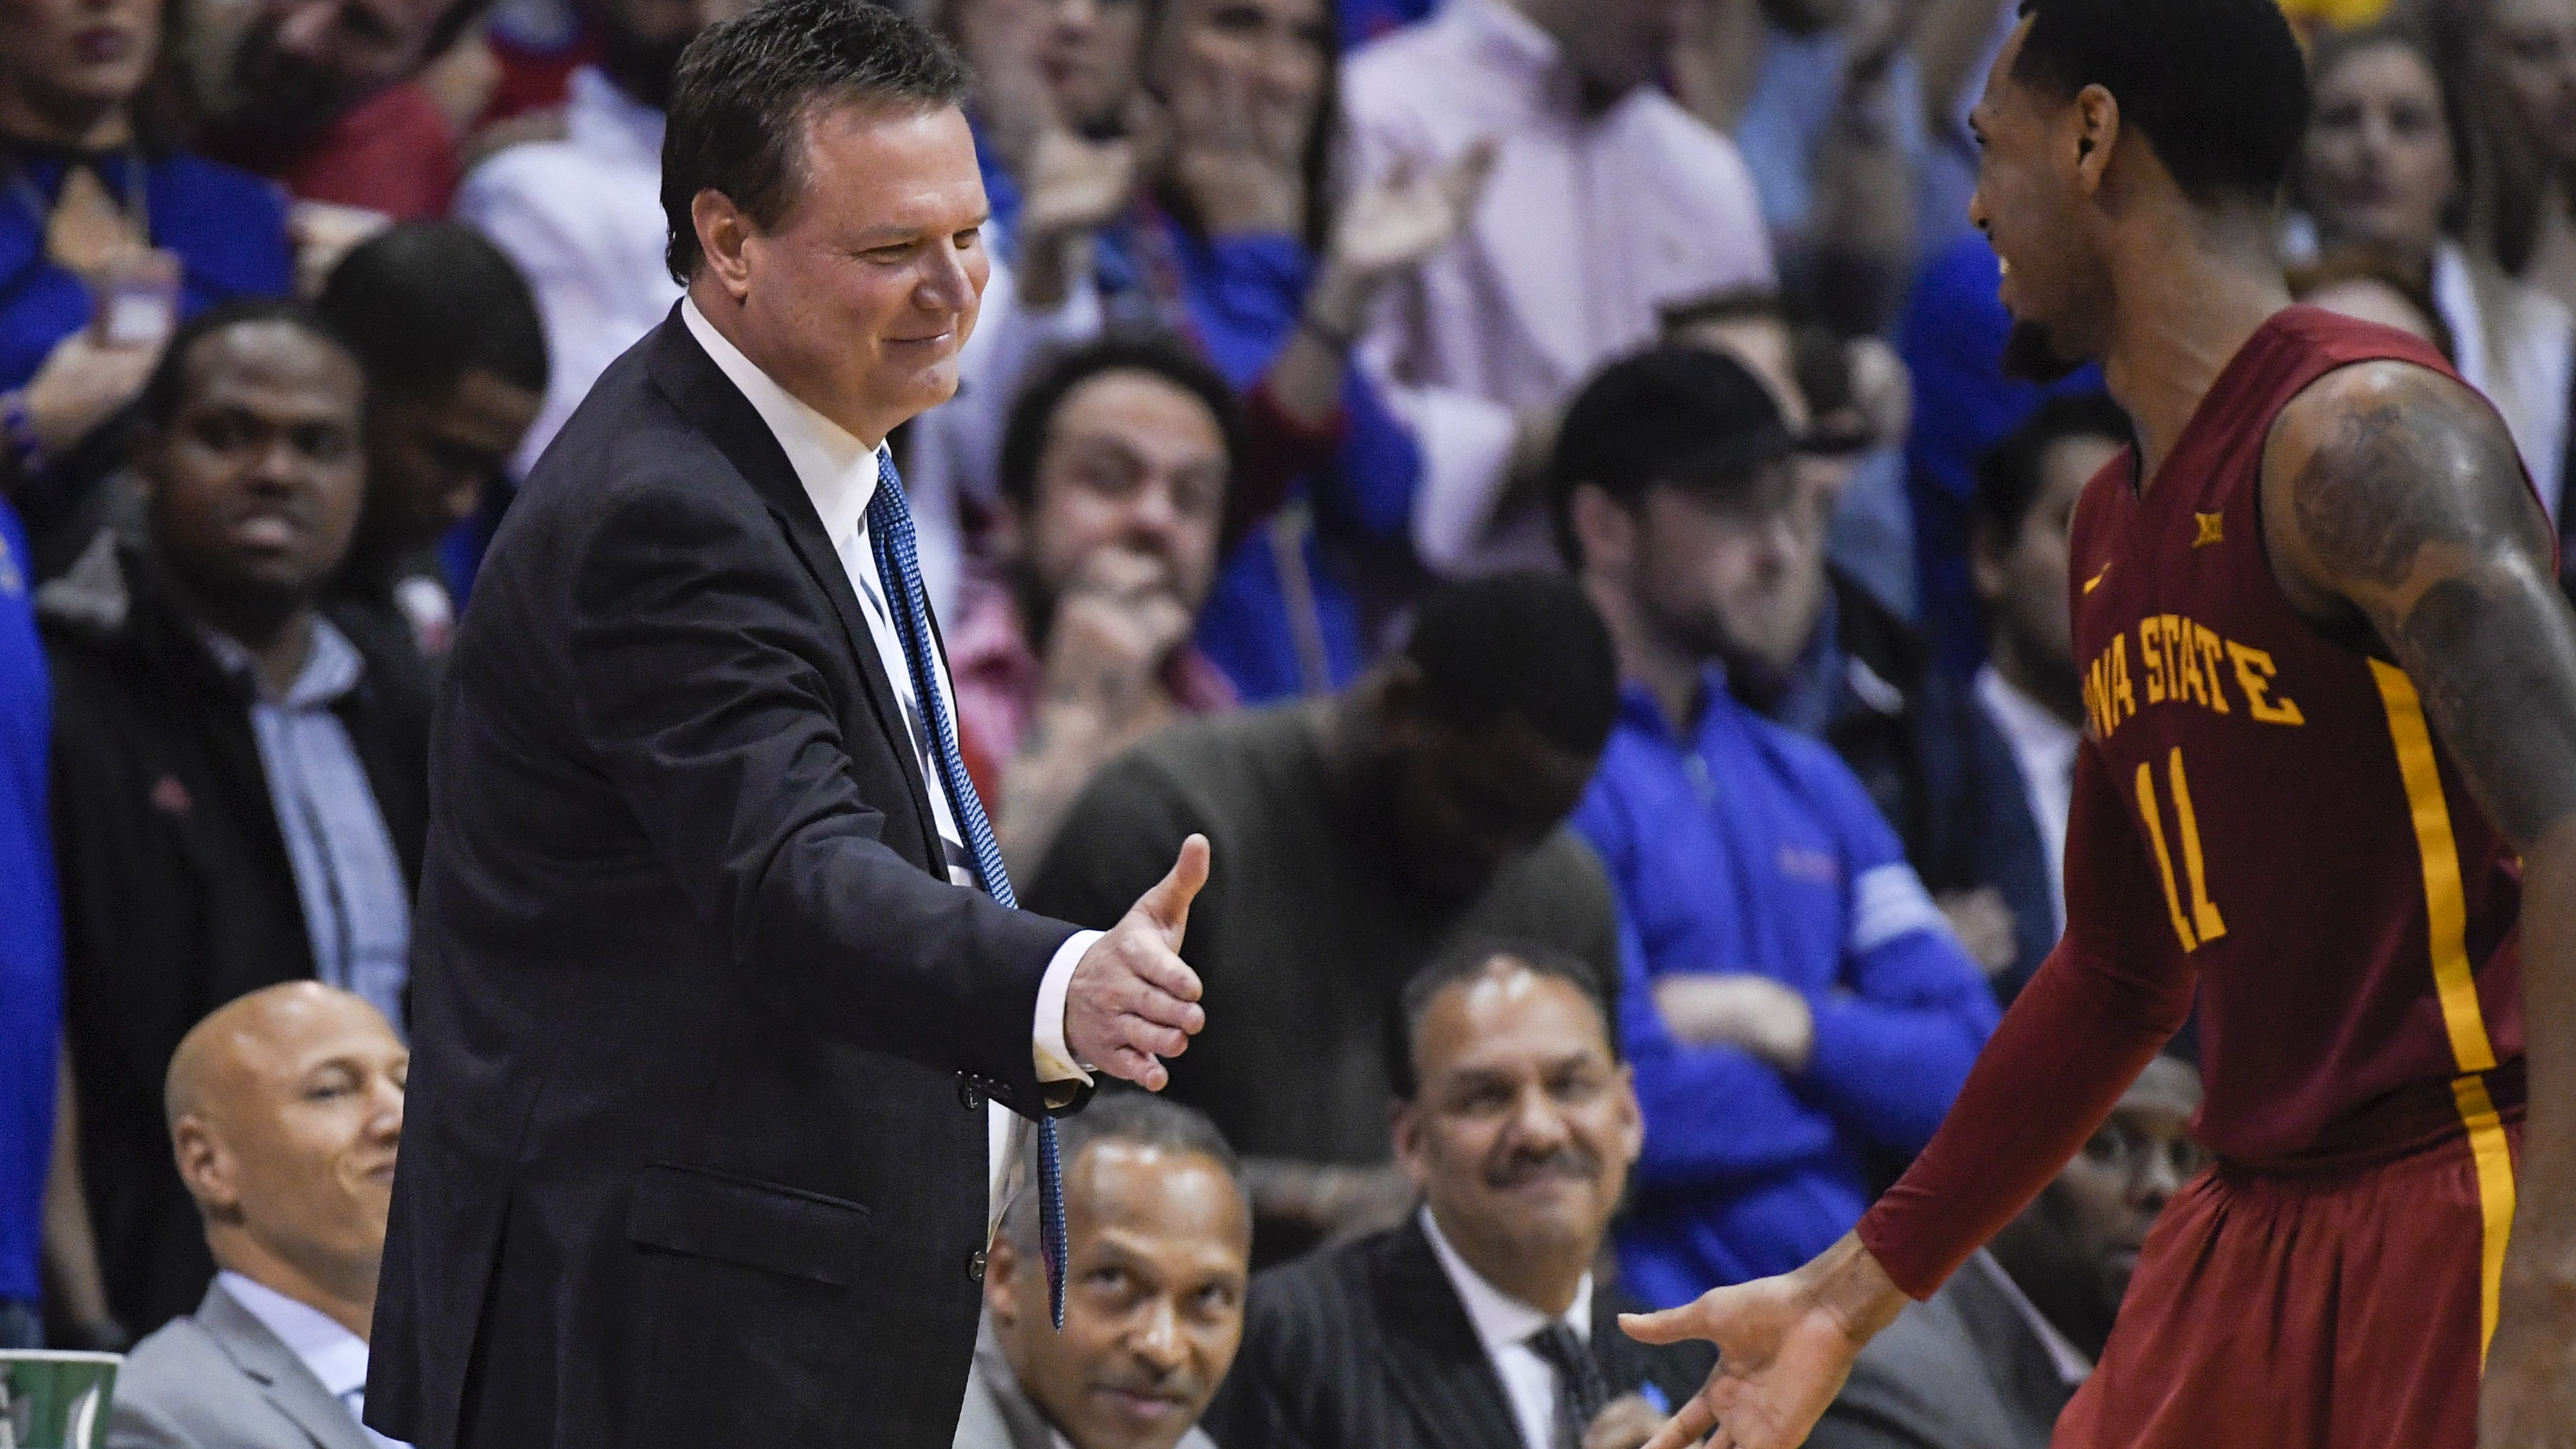 LAWRENCE, KS - FEBRUARY 04: Head coach Bill Self of the Kansas Jayhawks greets Monte Morris #11 of the Iowa State Cyclones during a break in their game on February 4, 2017 at Allen Field House in Lawrence, Kansas. (Photo by Reed Hoffmann/Getty Images)